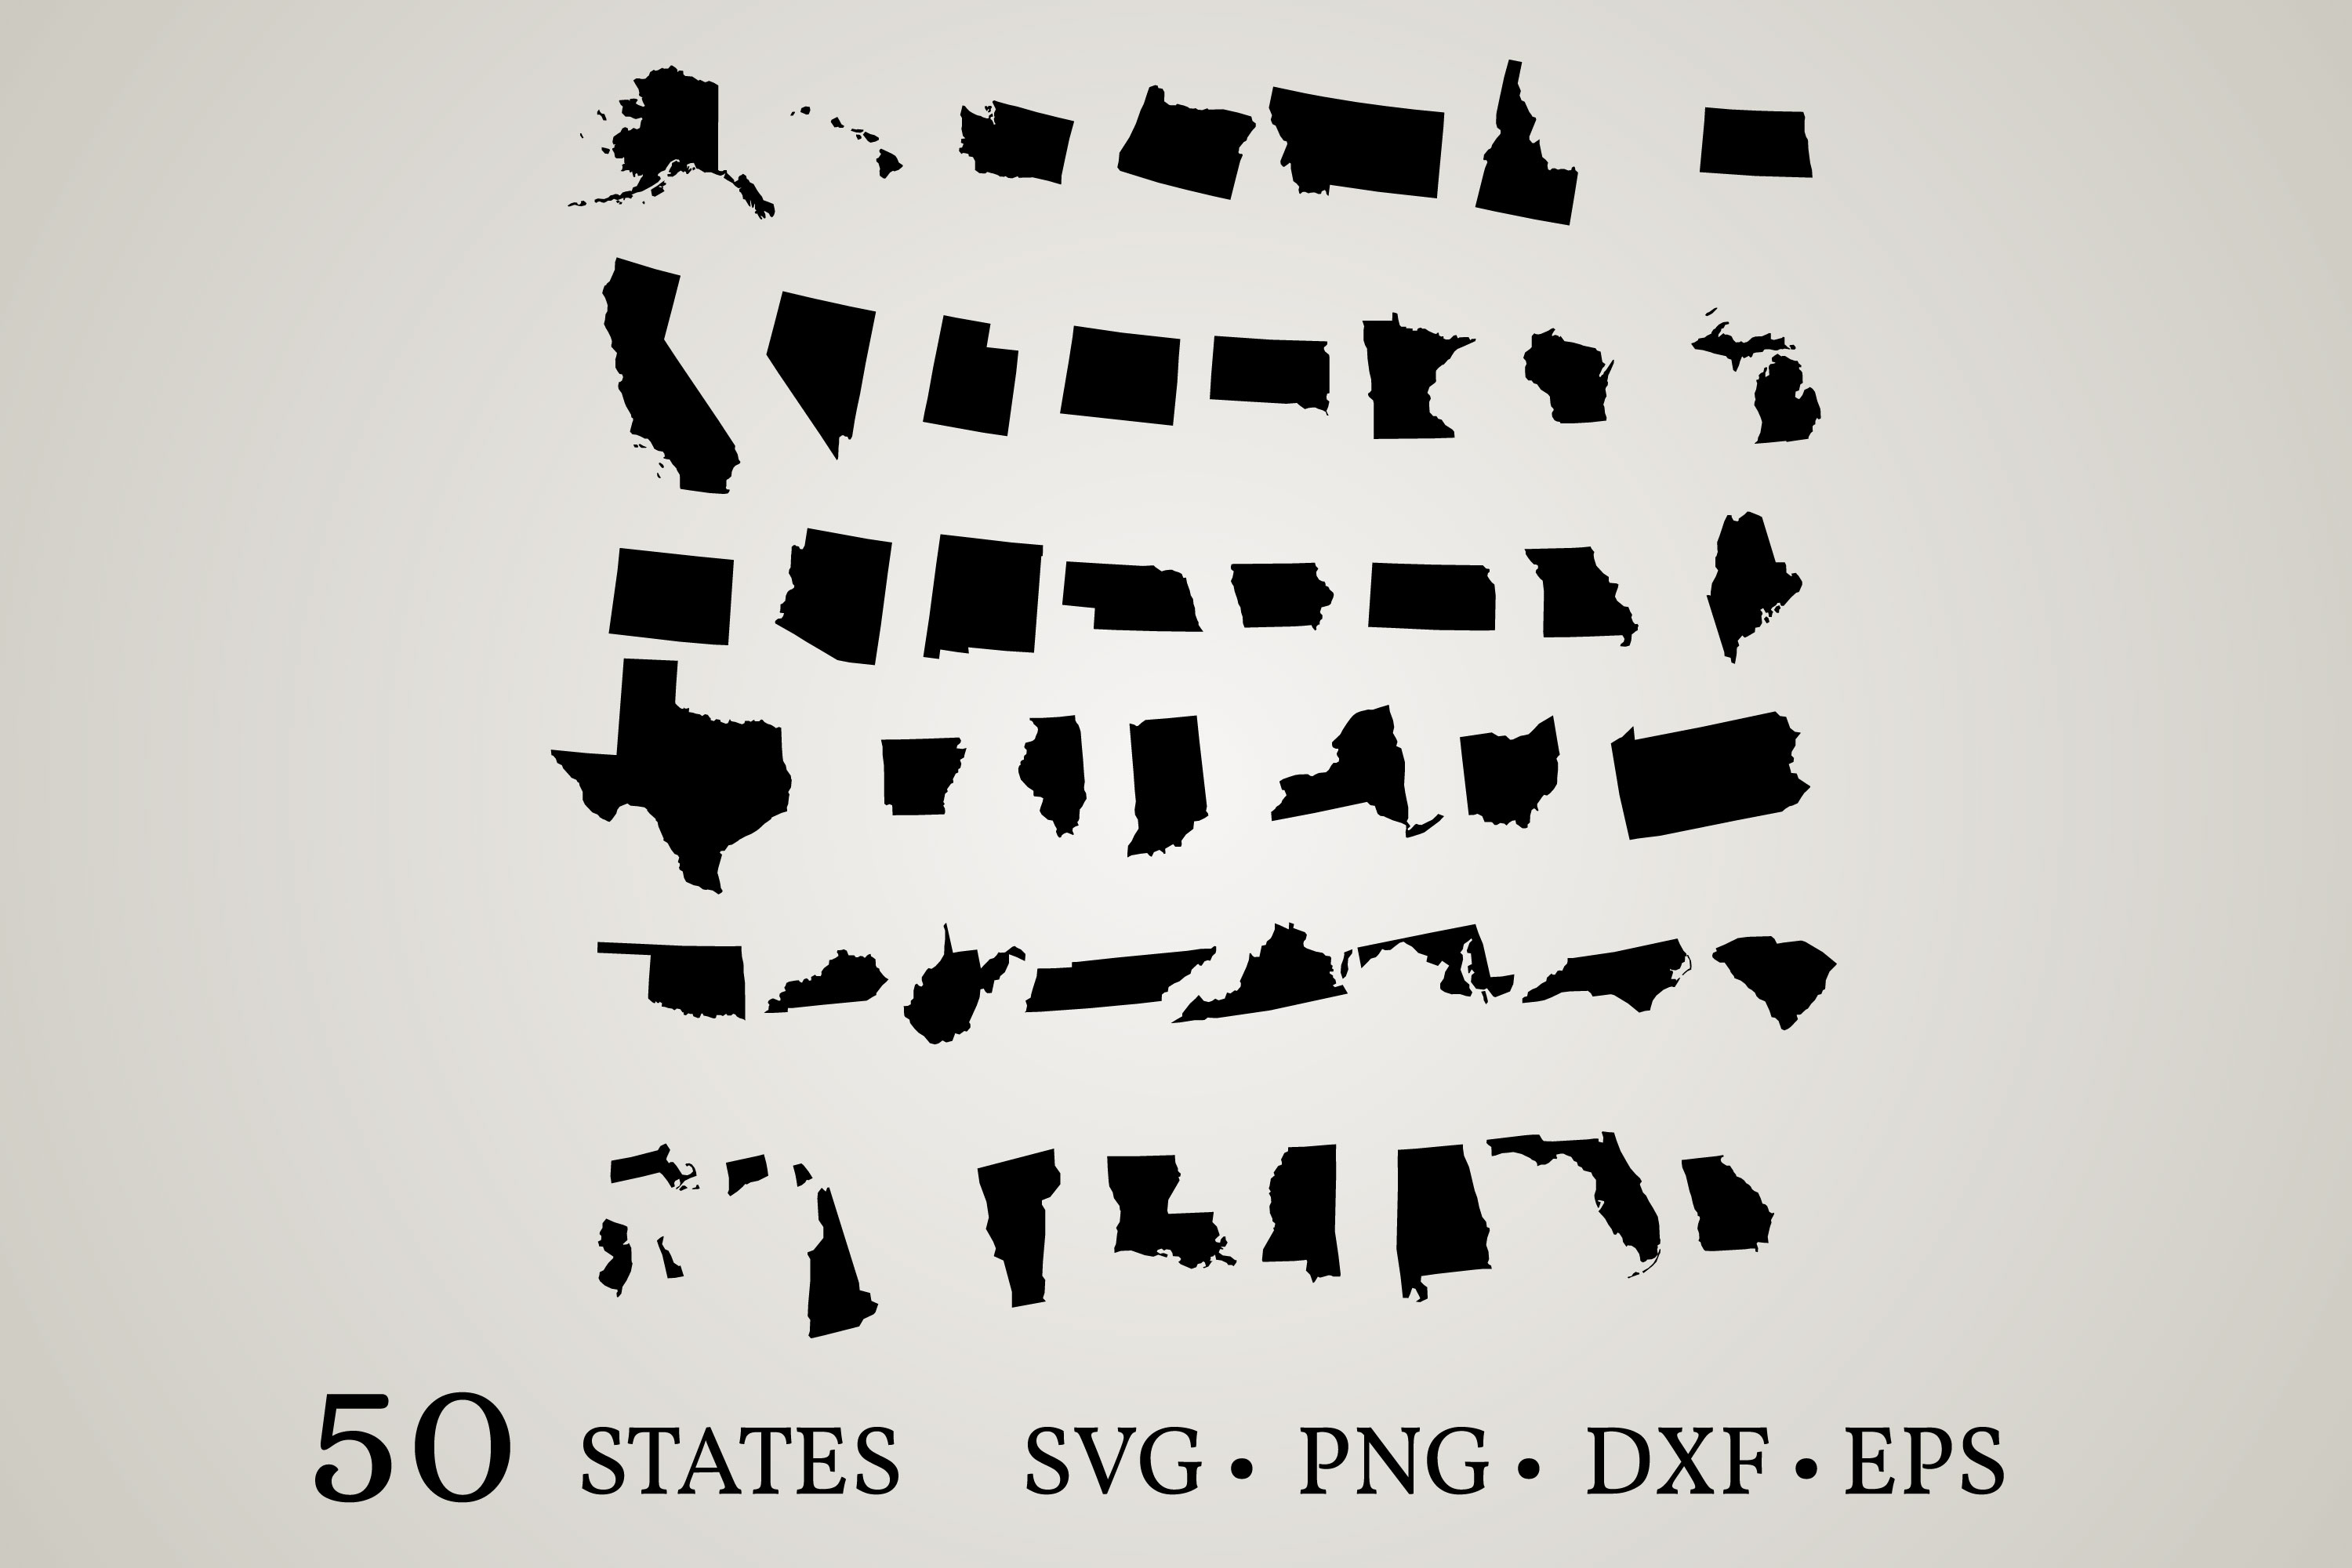 50 States of the United States SVG File